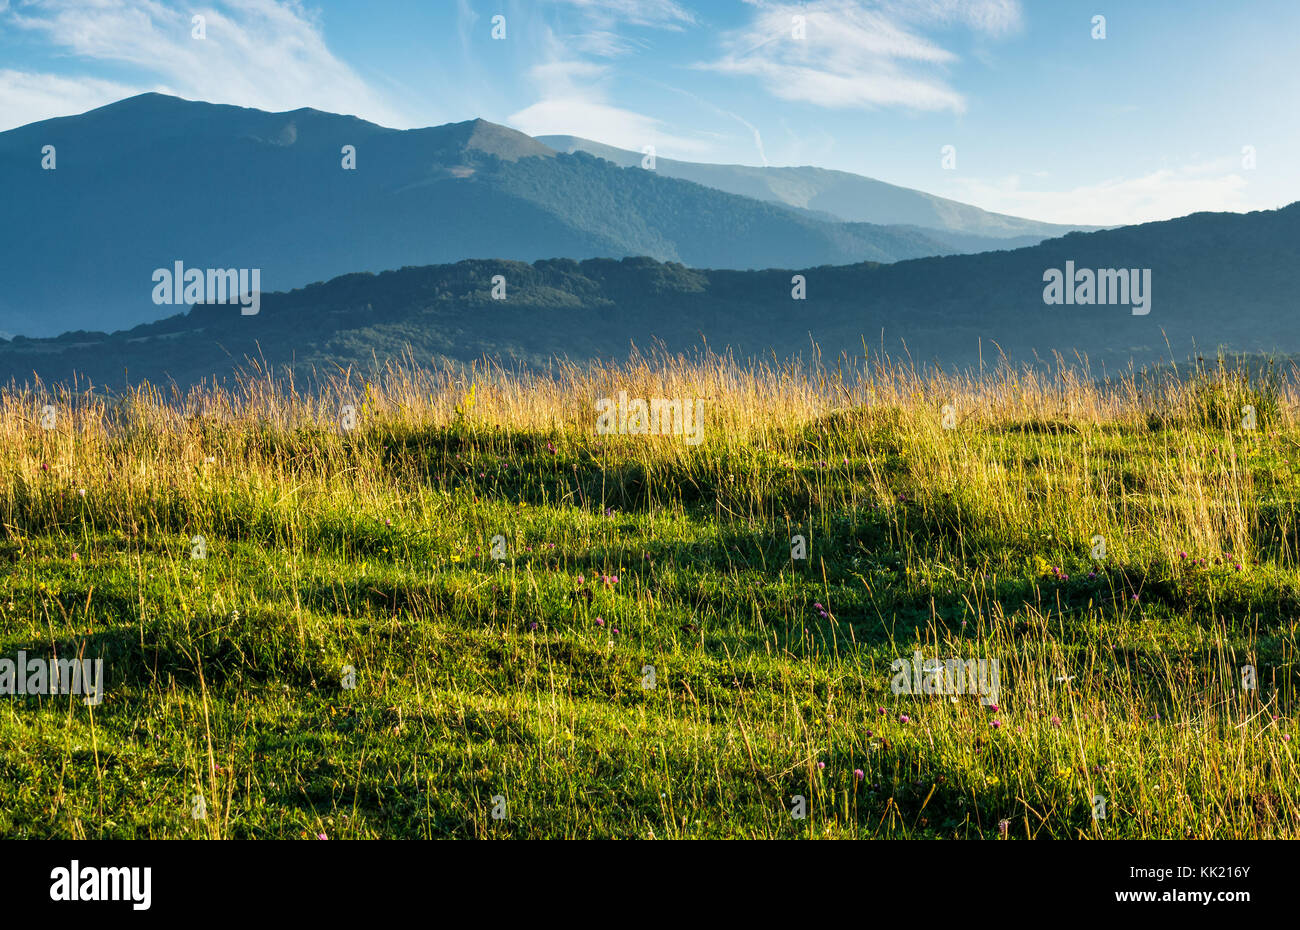 Summer scenery of grassy field in mountains mountain ridge with summer scenery of grassy field in mountains mountain ridge with high peaks in the far distance beautiful nature of carpathians voltagebd Images